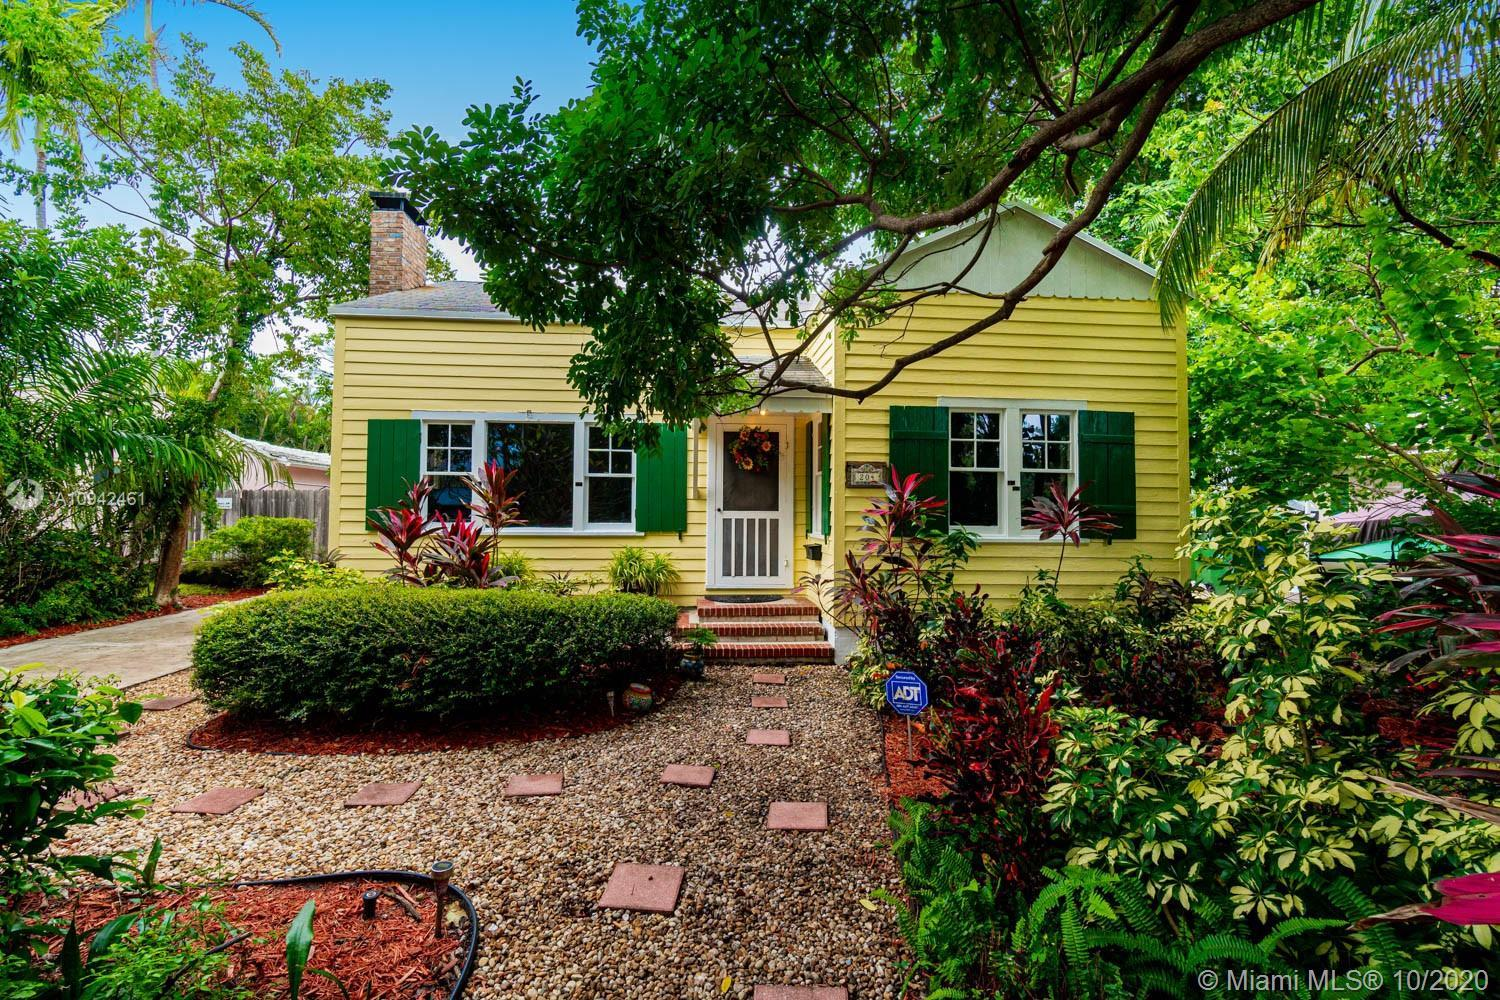 Charming Dade County Pine Cottage home in Victoria Park. This lovely frame home sits on a high eleva